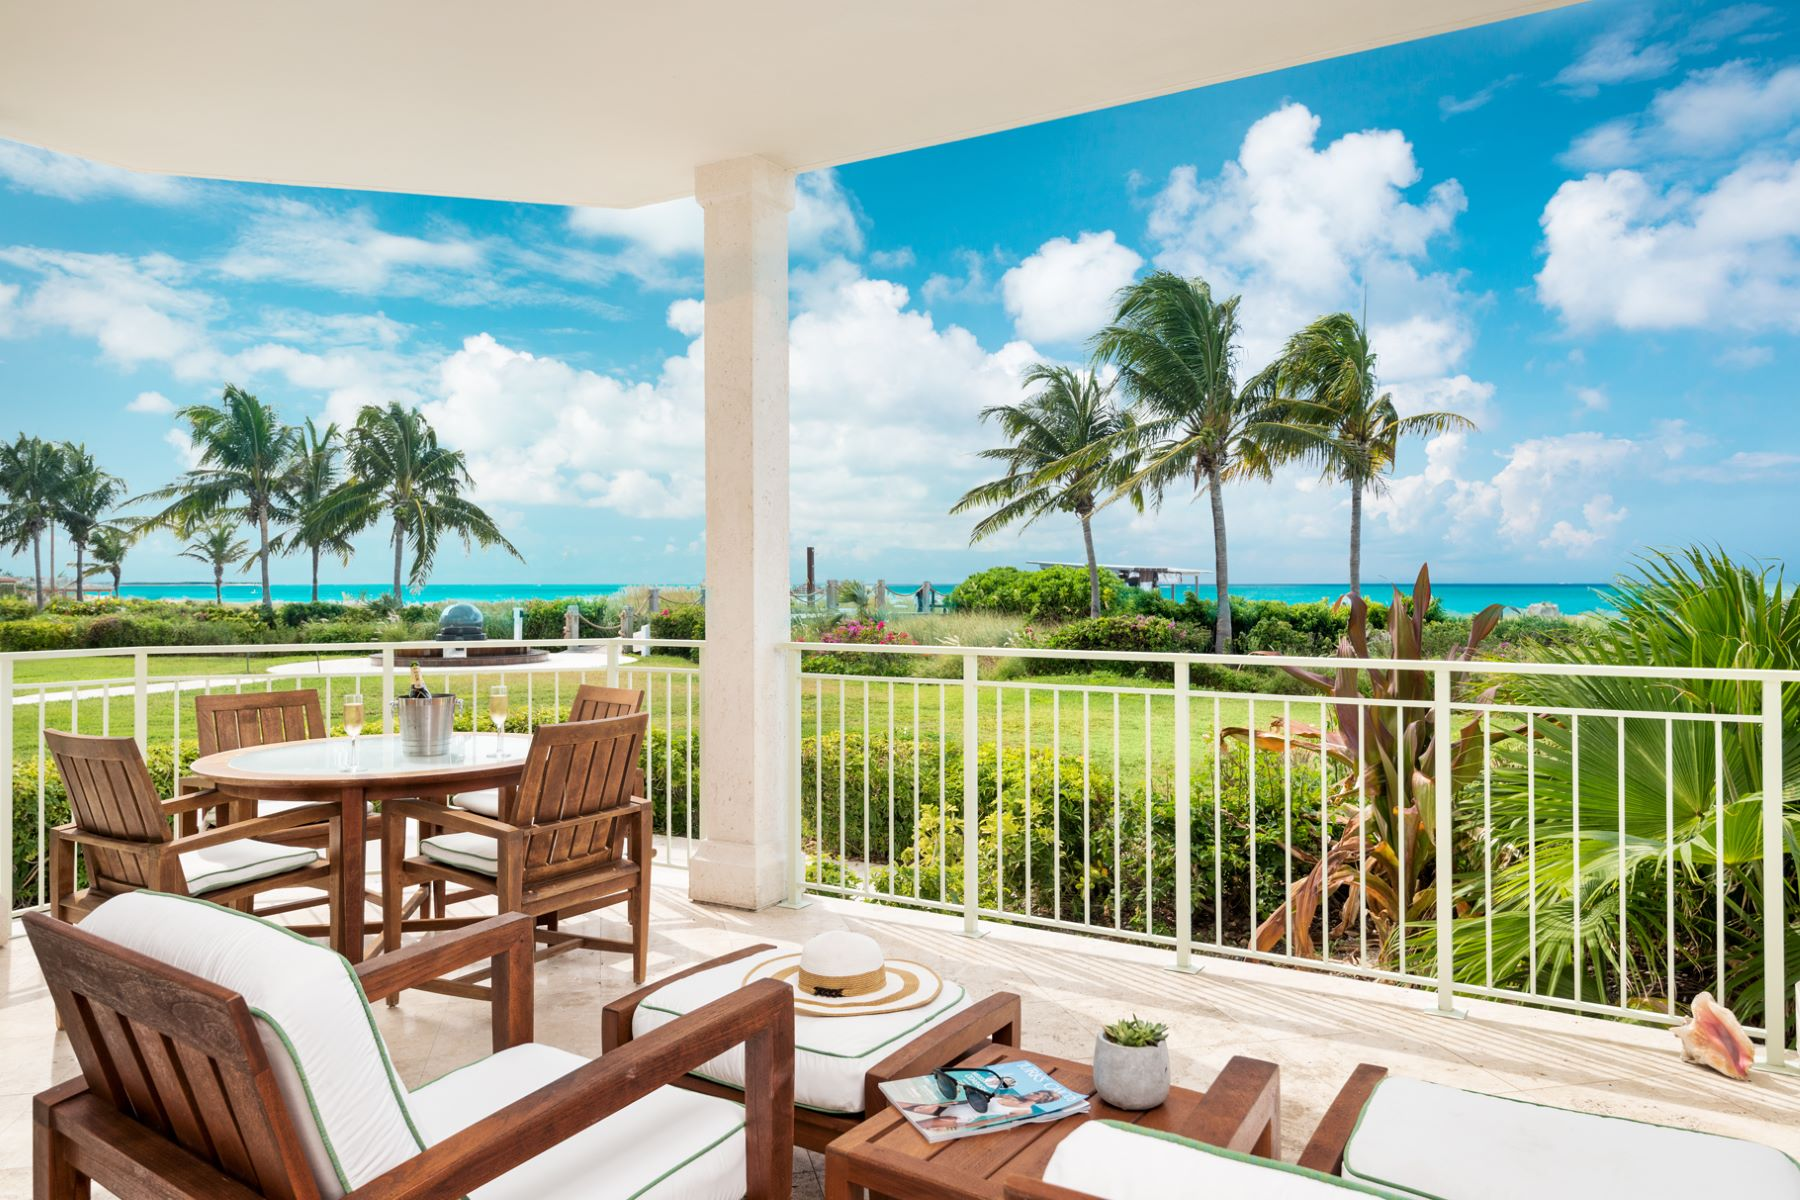 Condominio por un Venta en West Bay Club ~ Suite 107 West Bay Club - Suite 107 Grace Bay, Providenciales TC Islas Turcas Y Caicos